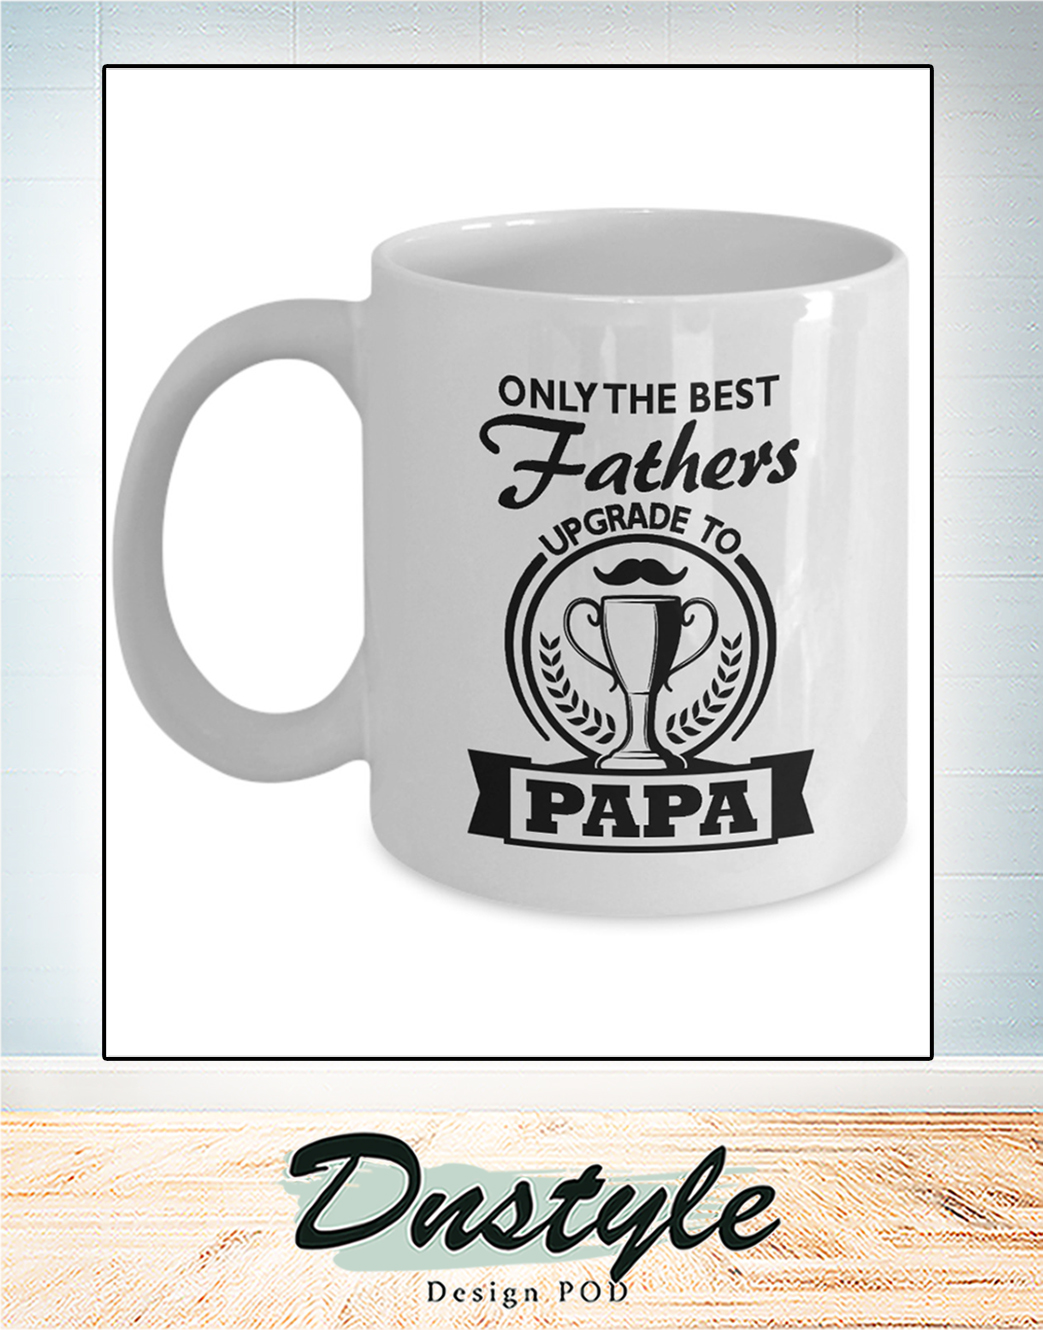 Only the best fathers upgrade to papa mug 1